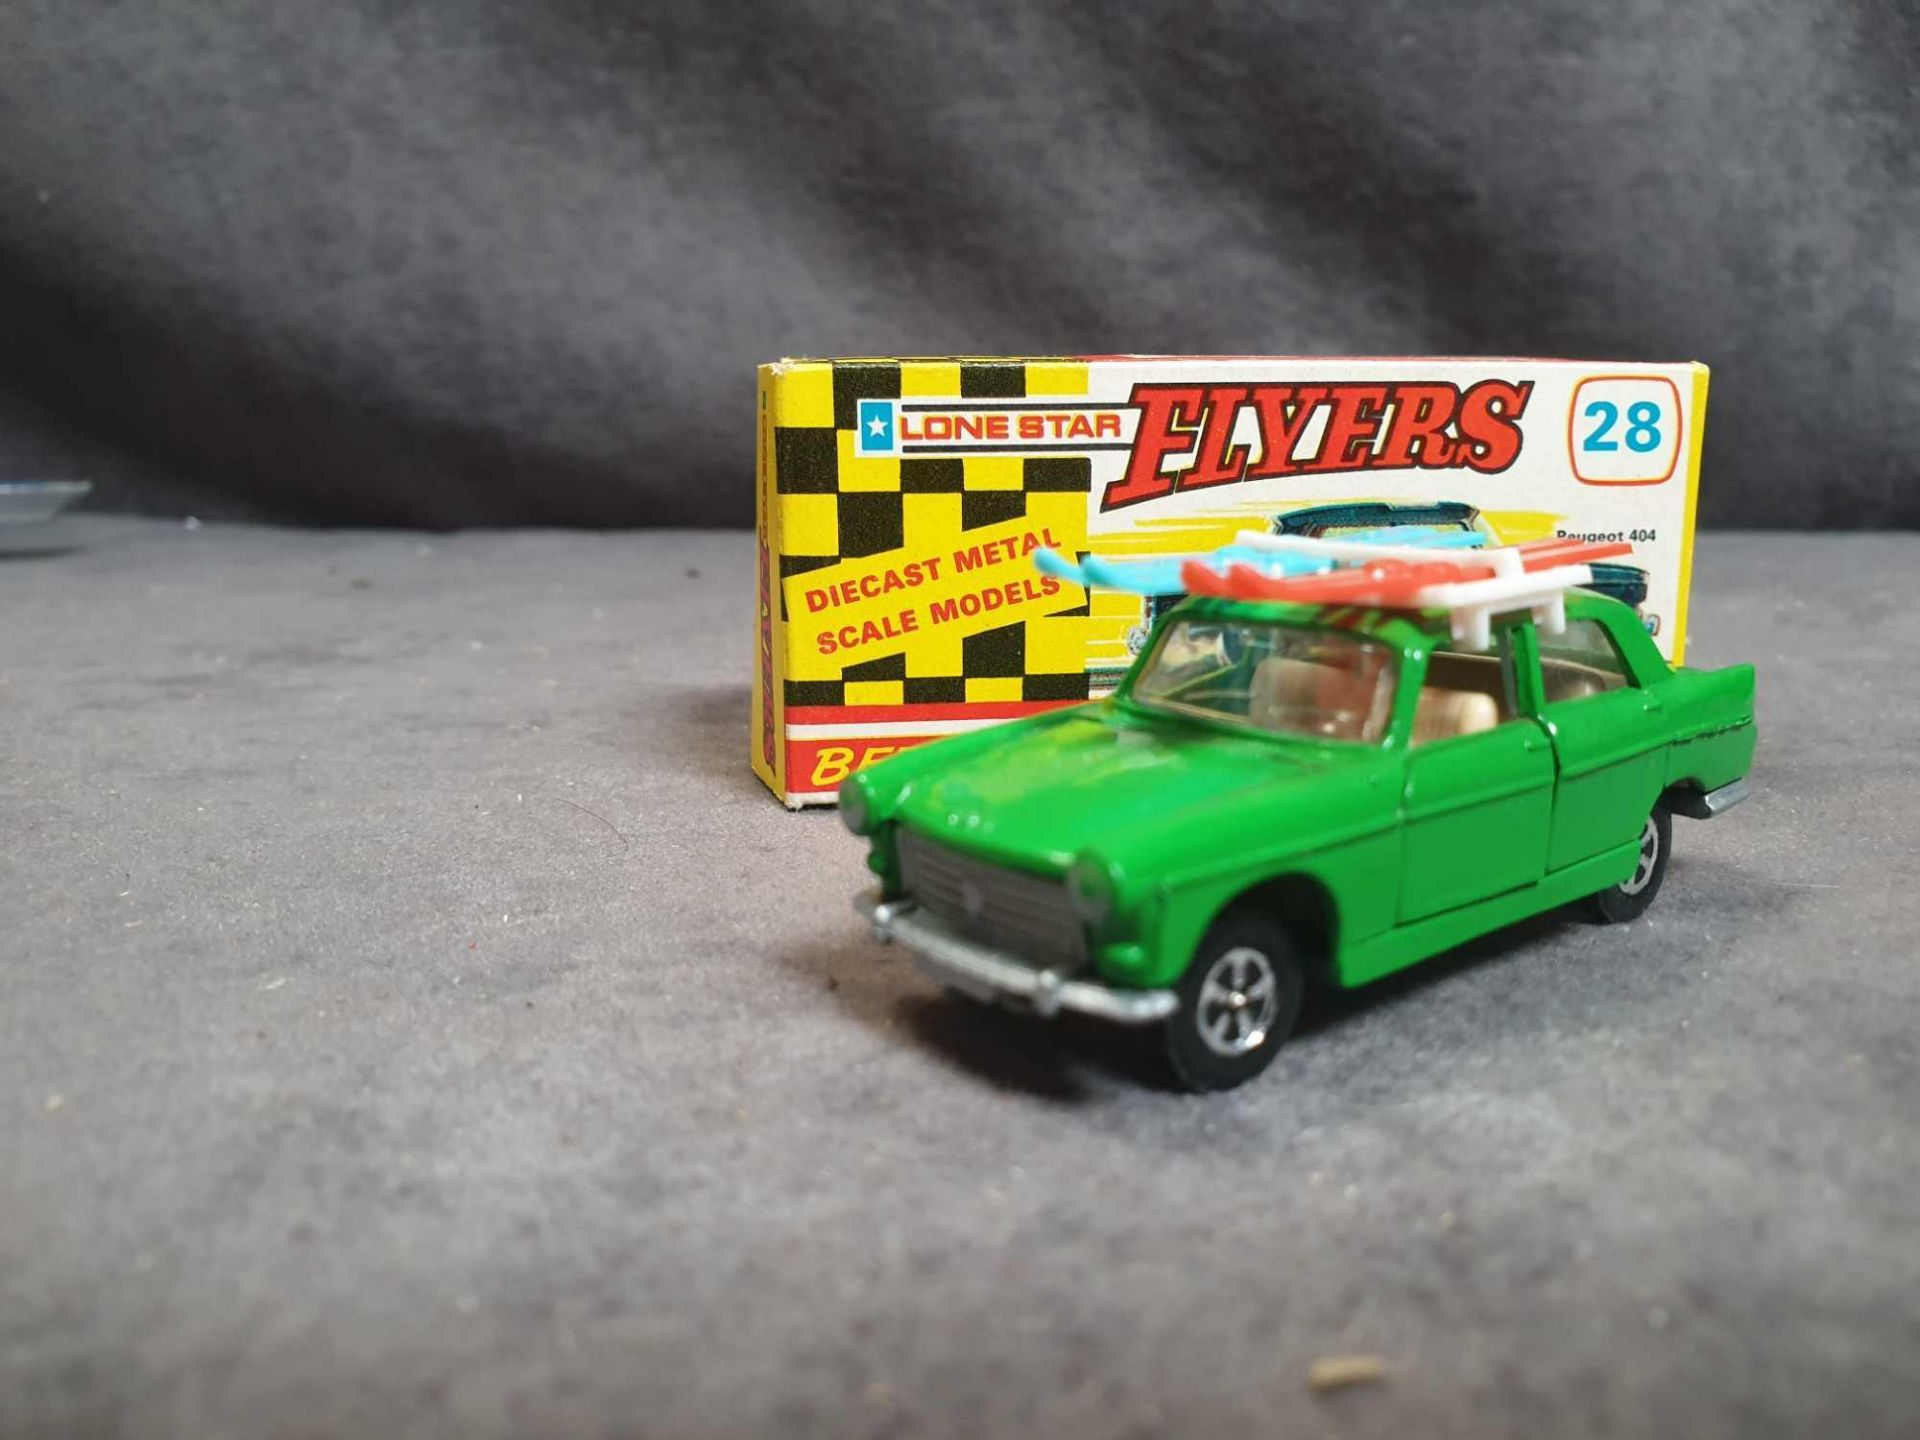 Mint Lone Star Flyers #28 Peugeot 404 Green With Skis Diecast Vehicle With Box - Image 2 of 3